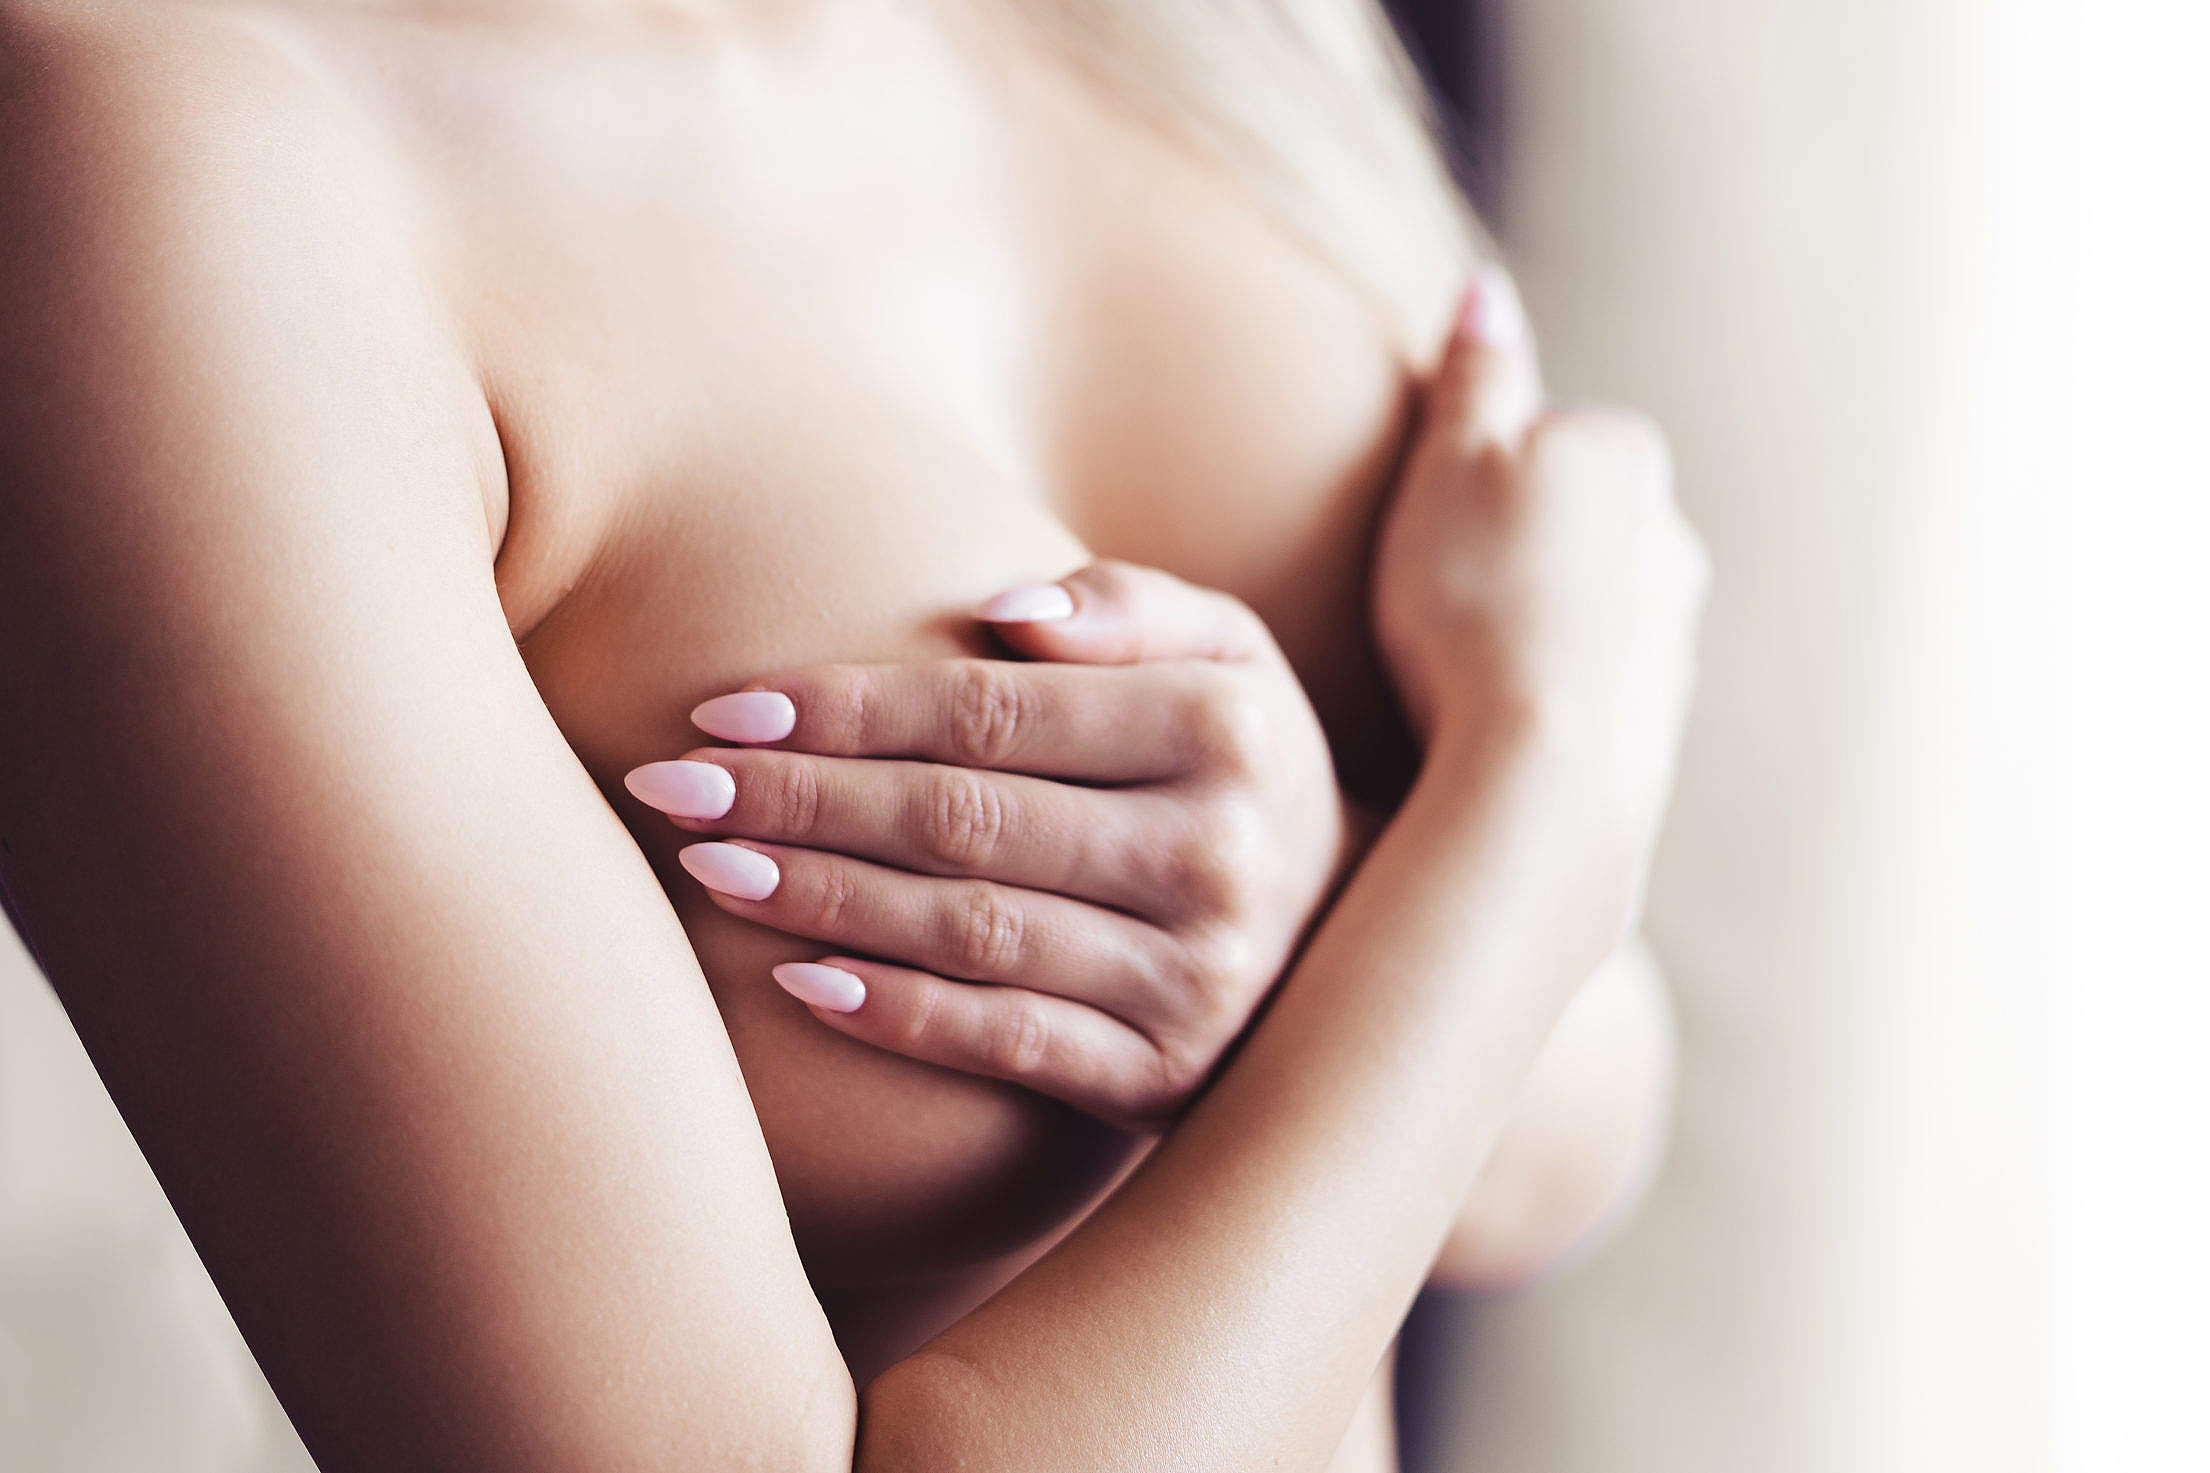 Young Woman Covering Her Breasts Free Stock Photo